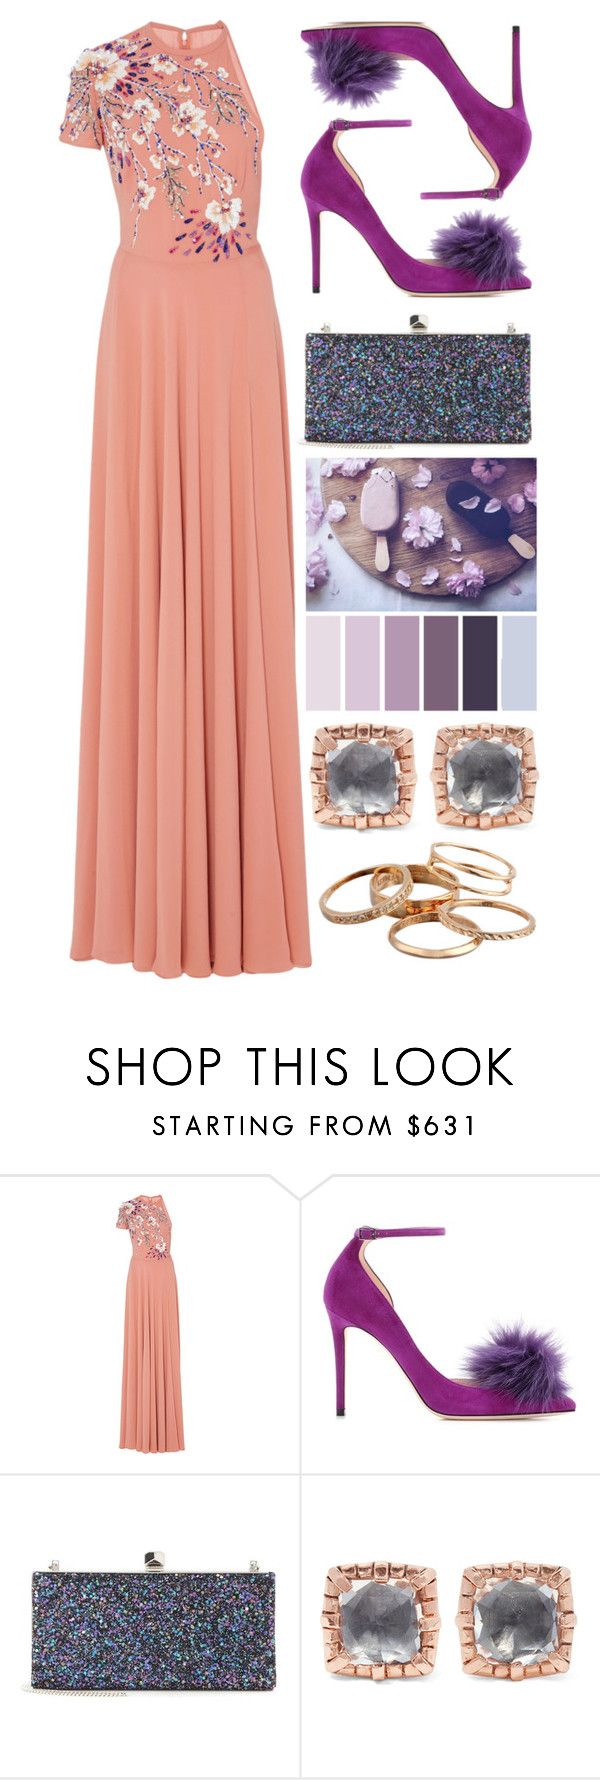 """""""Single Sleeve"""" by cherieaustin ❤ liked on Polyvore featuring Georges Hobeika, Jimmy Choo, Larkspur & Hawk and Kendra Scott"""